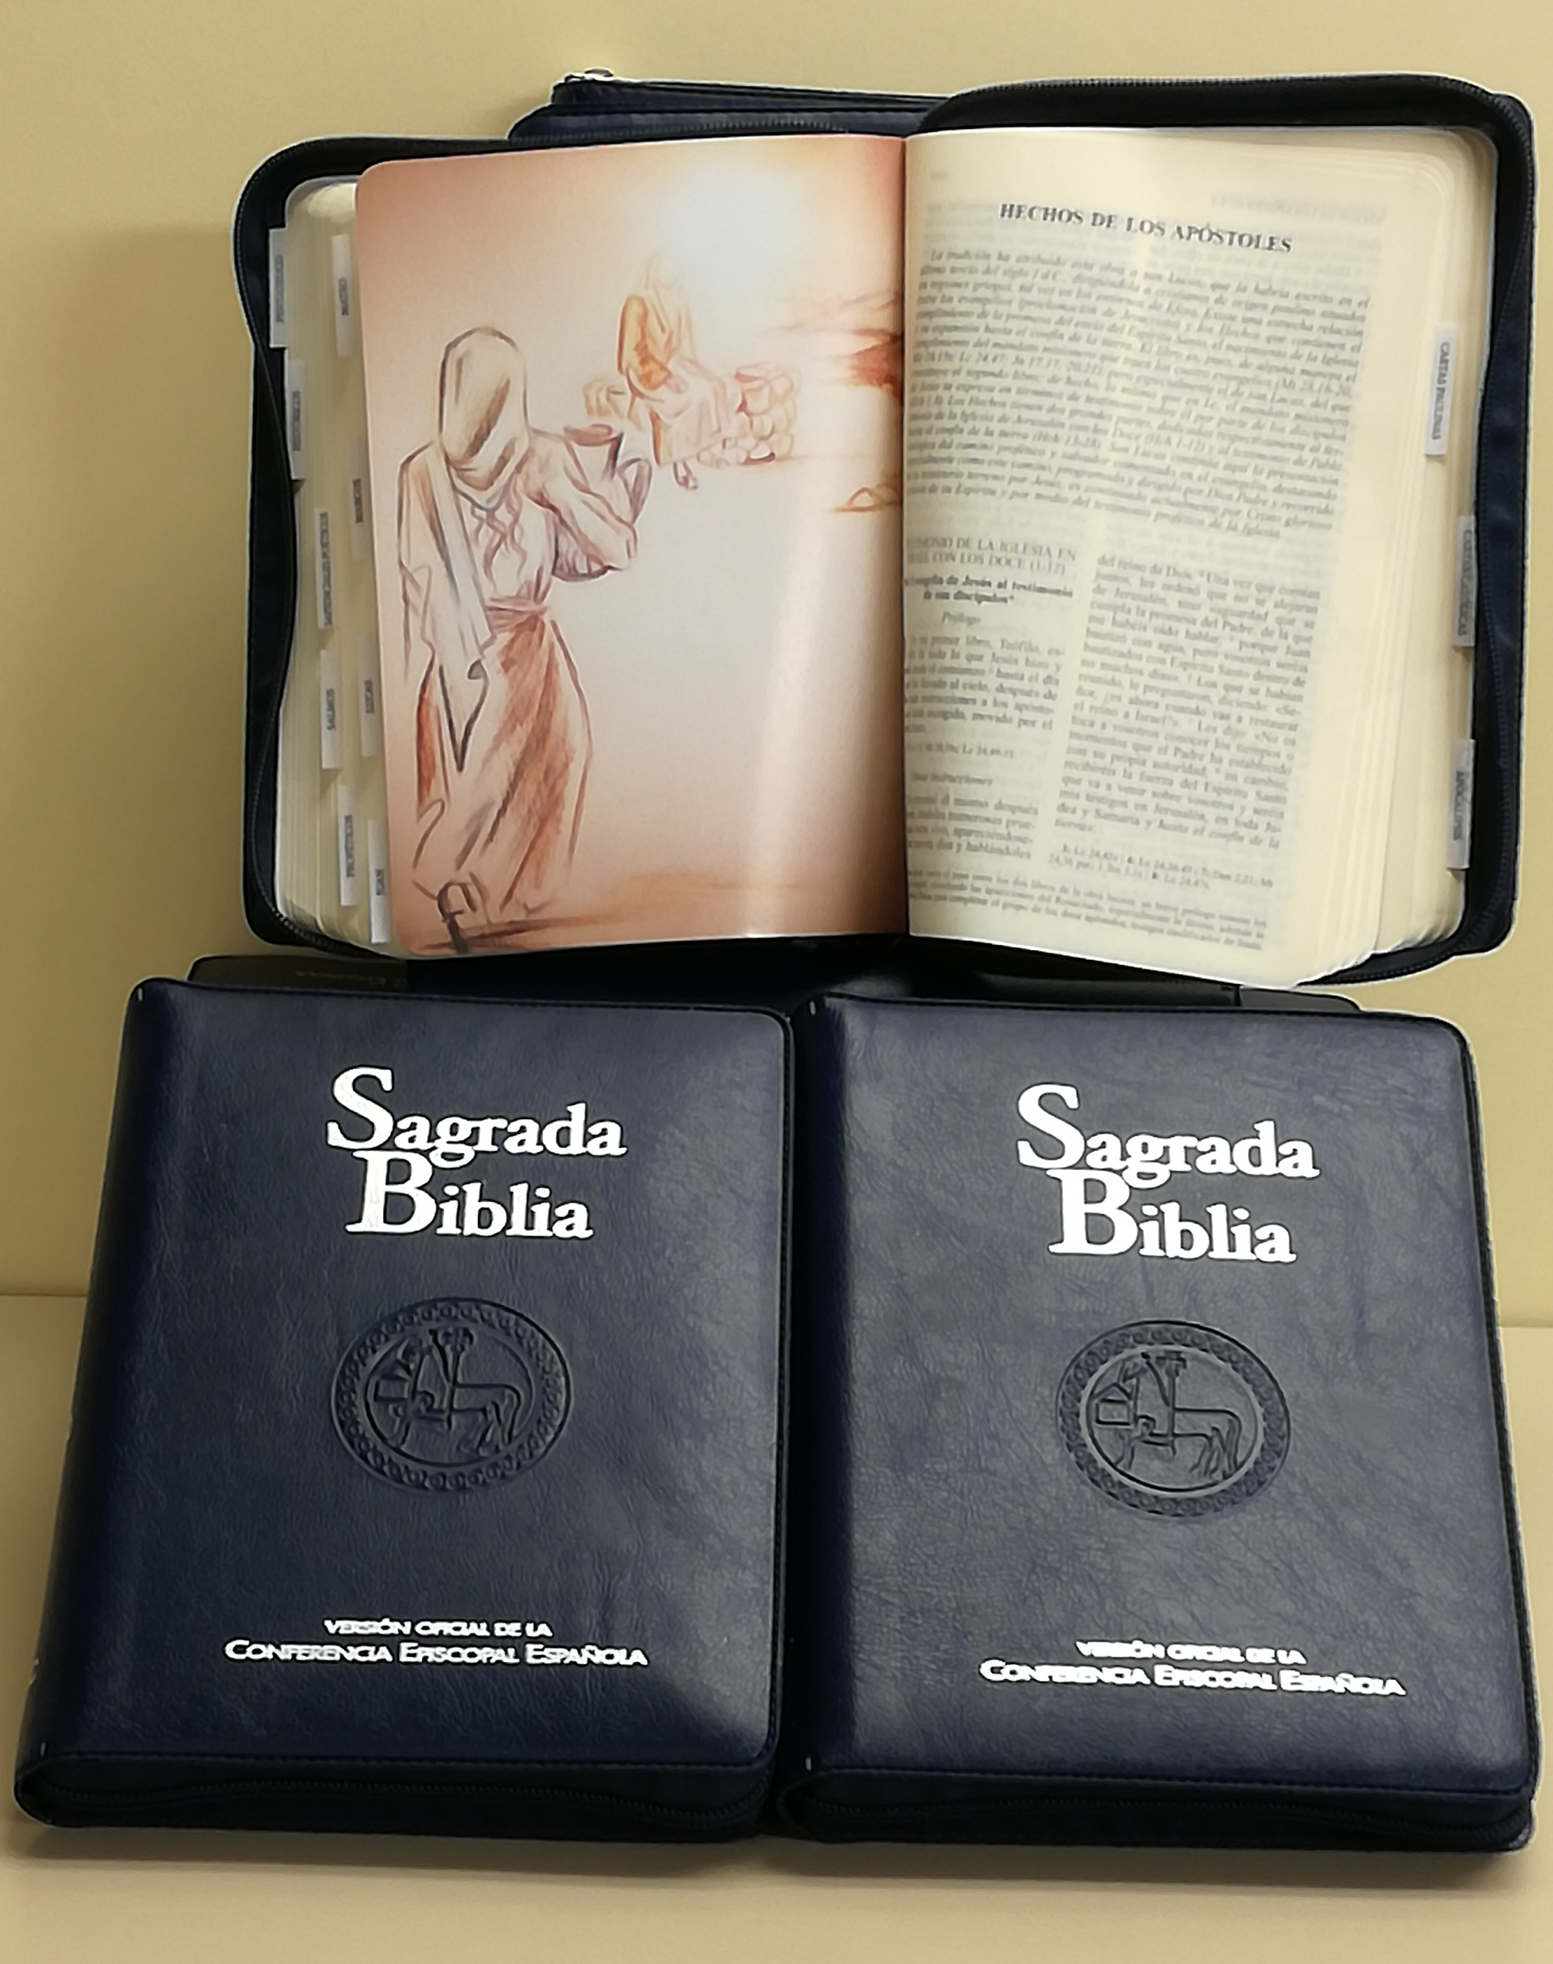 sagrada-biblia-version-oficial-de-la-cee-ed-popular-flexibook